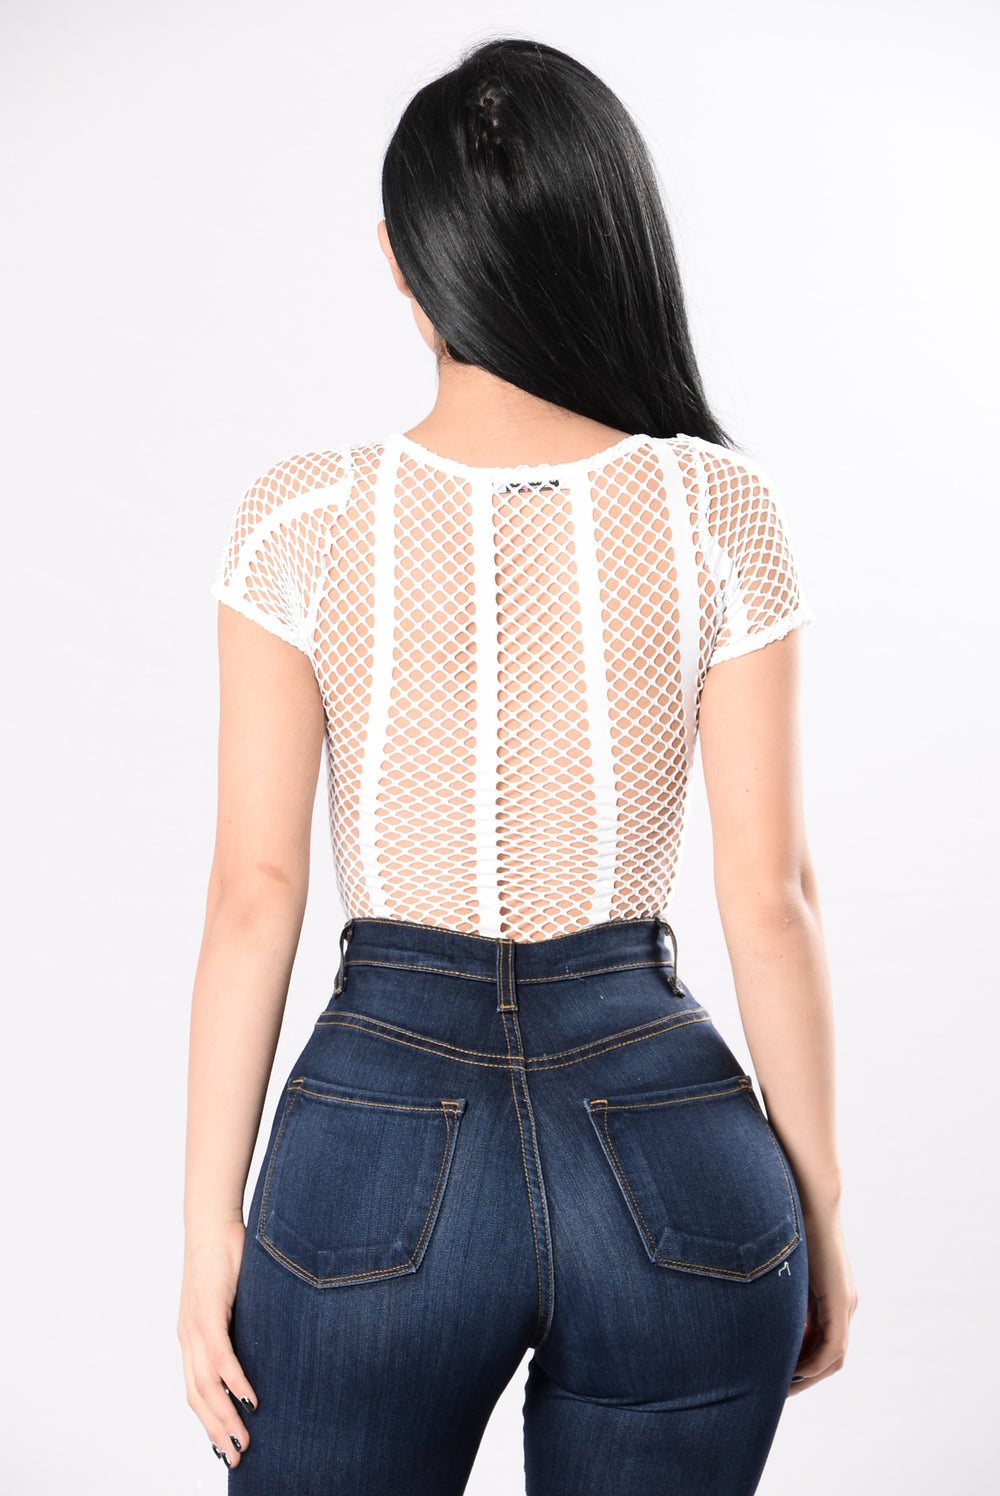 Through The Lines Bodysuit - White